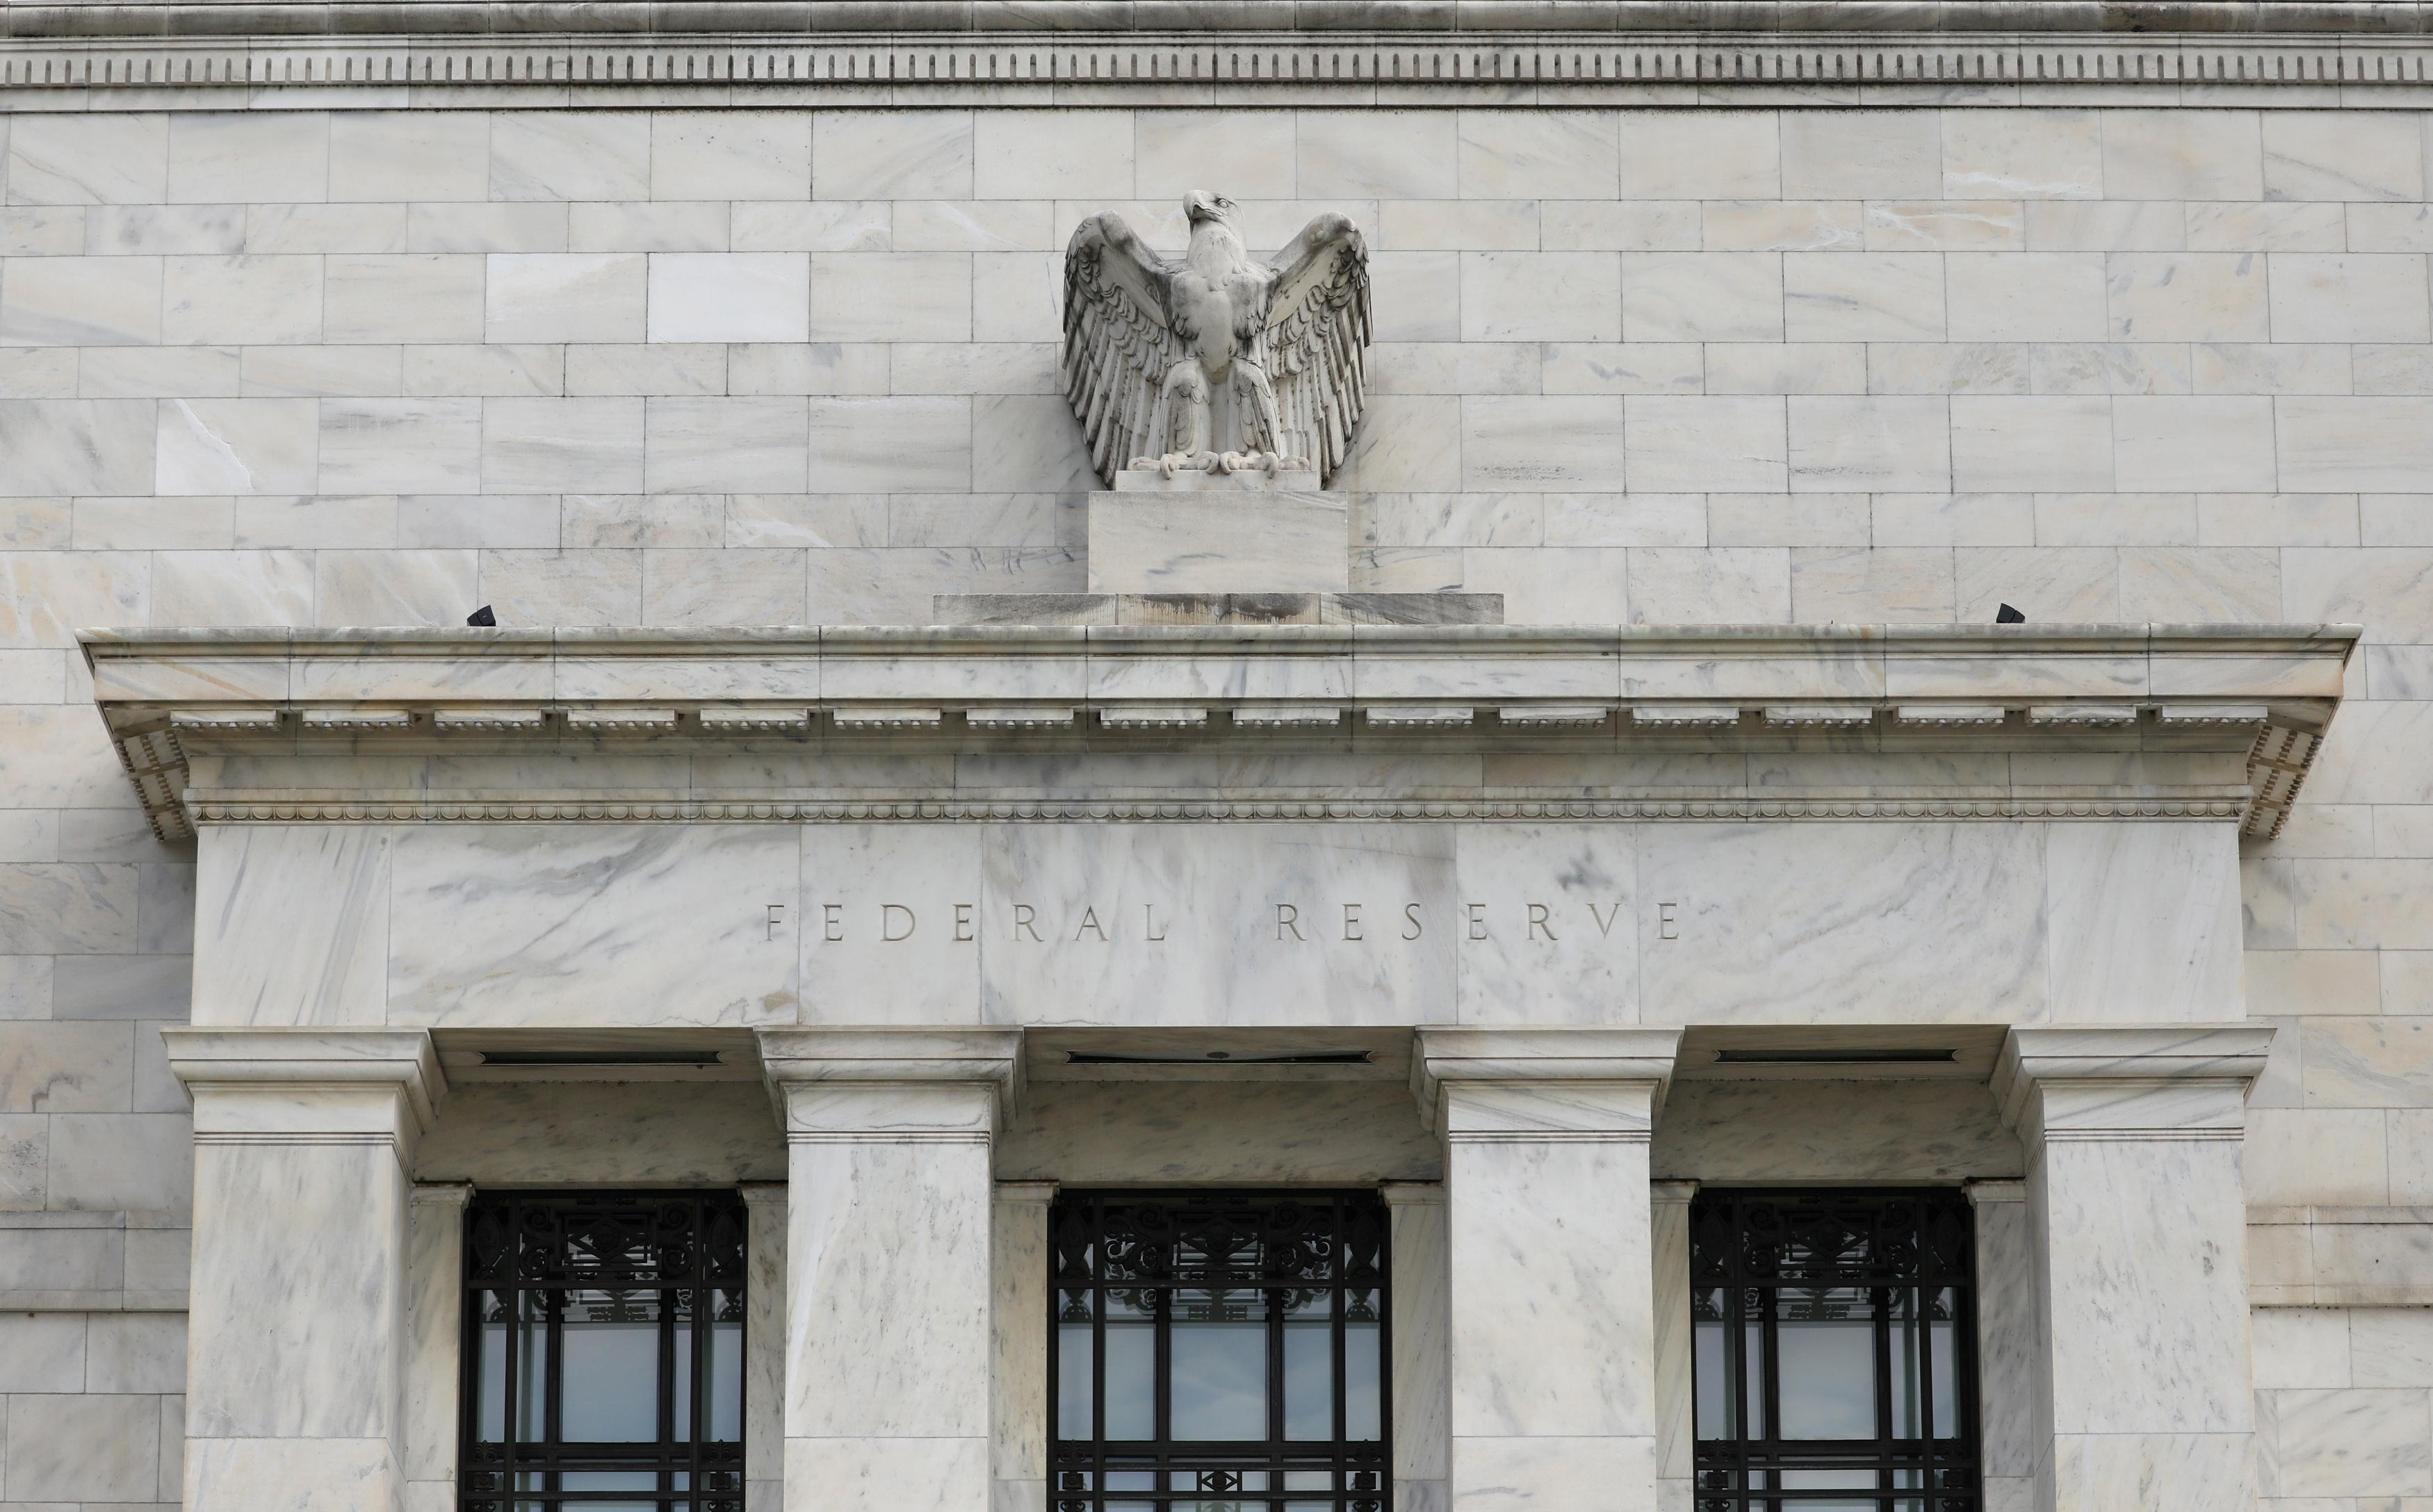 After year of living dangerously, Fed expected to signal time to...